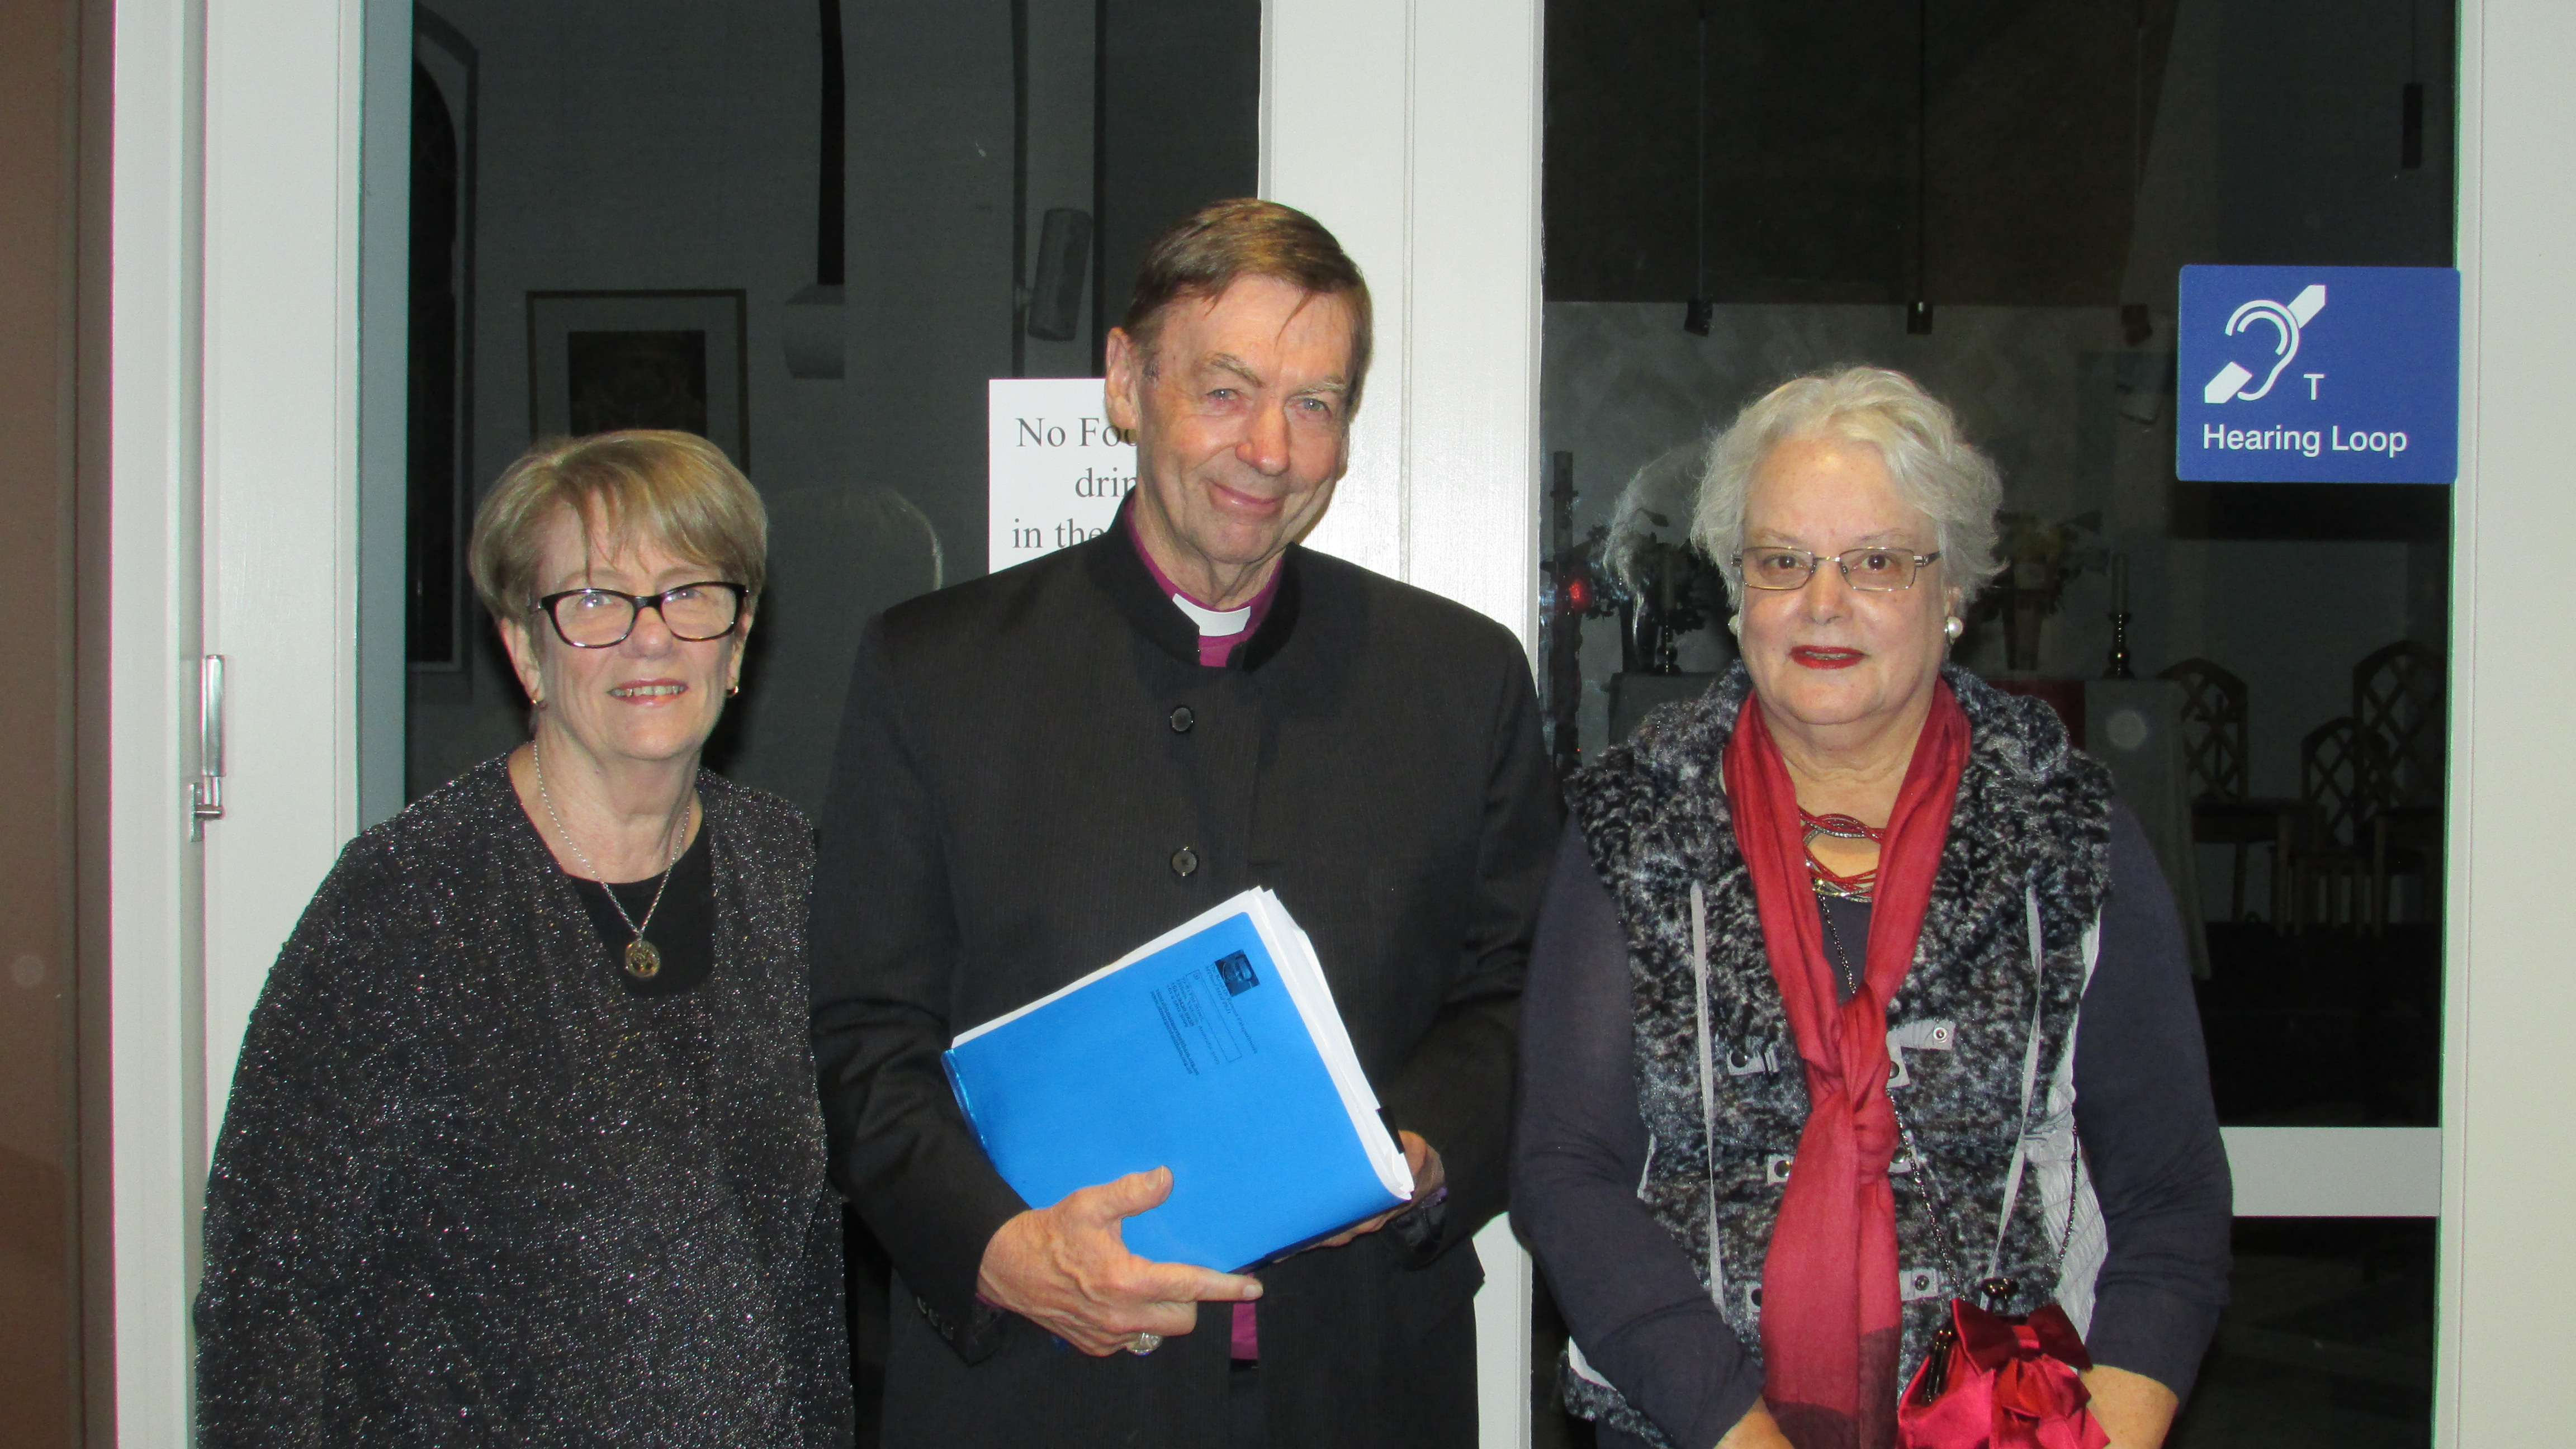 Bishop Philip Huggins, Kathleen Toal & Diana Warrell